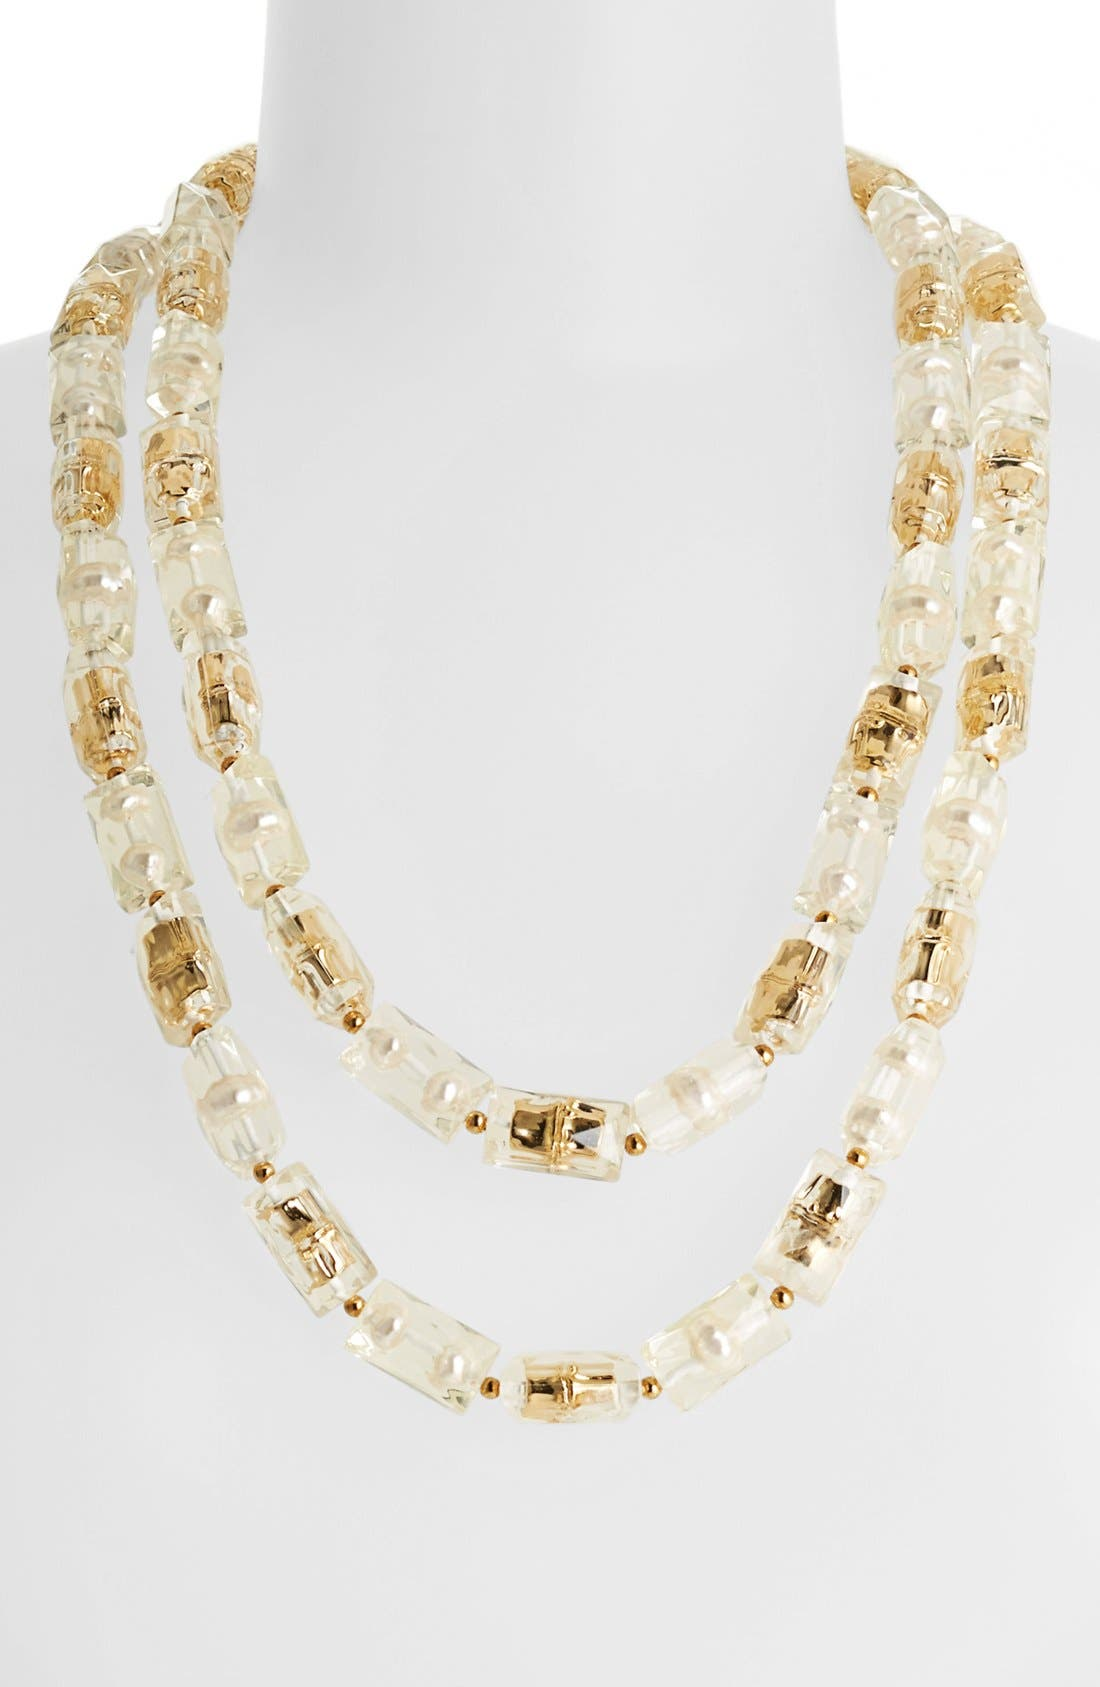 Main Image - kate spade new york 'bamboo park' extra long beaded necklace